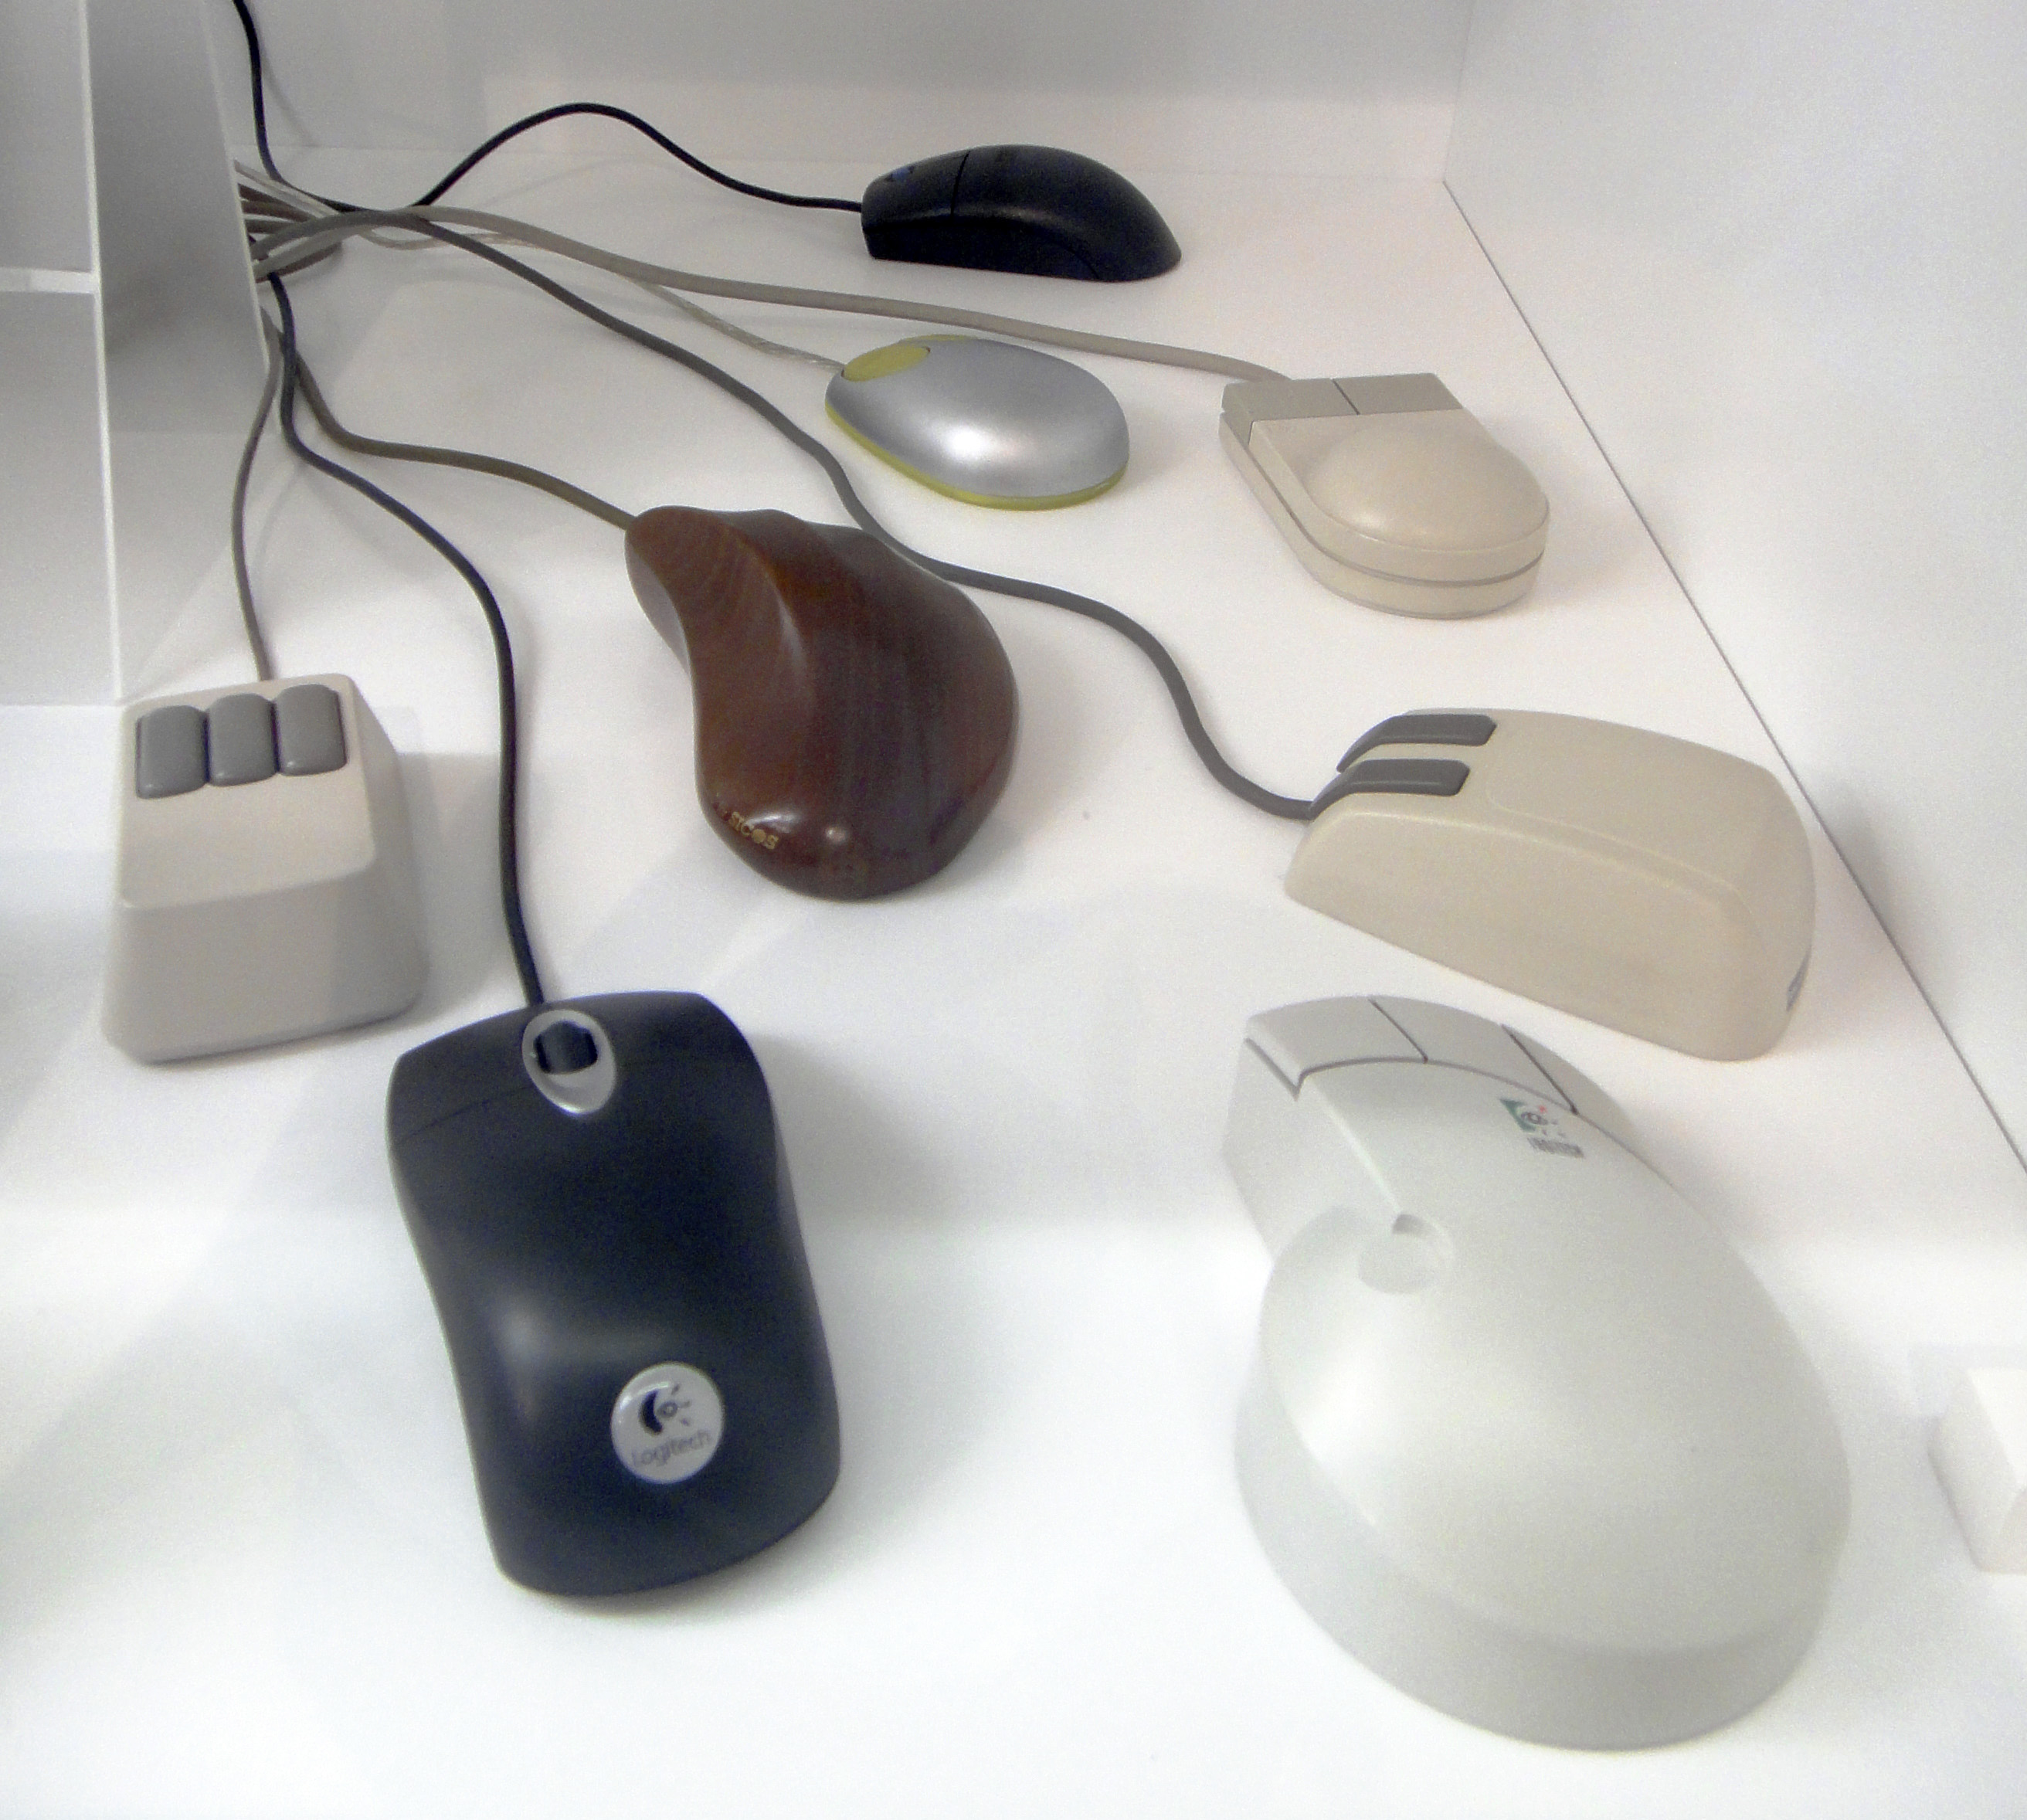 Different types of computer mouse images